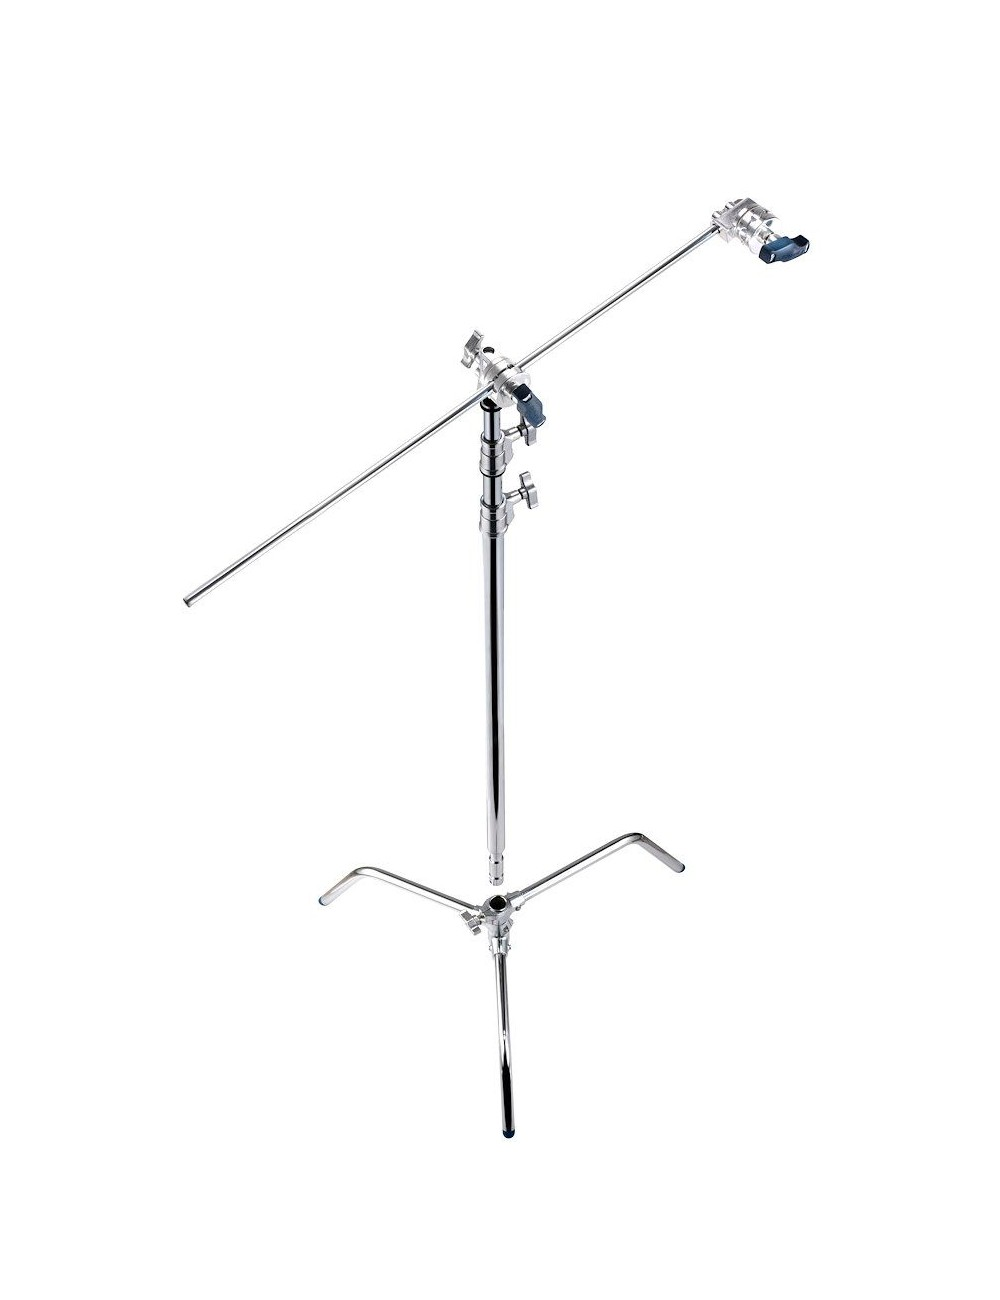 MANFROTTO Avenger Kit C-Stand 30 con base staccabile